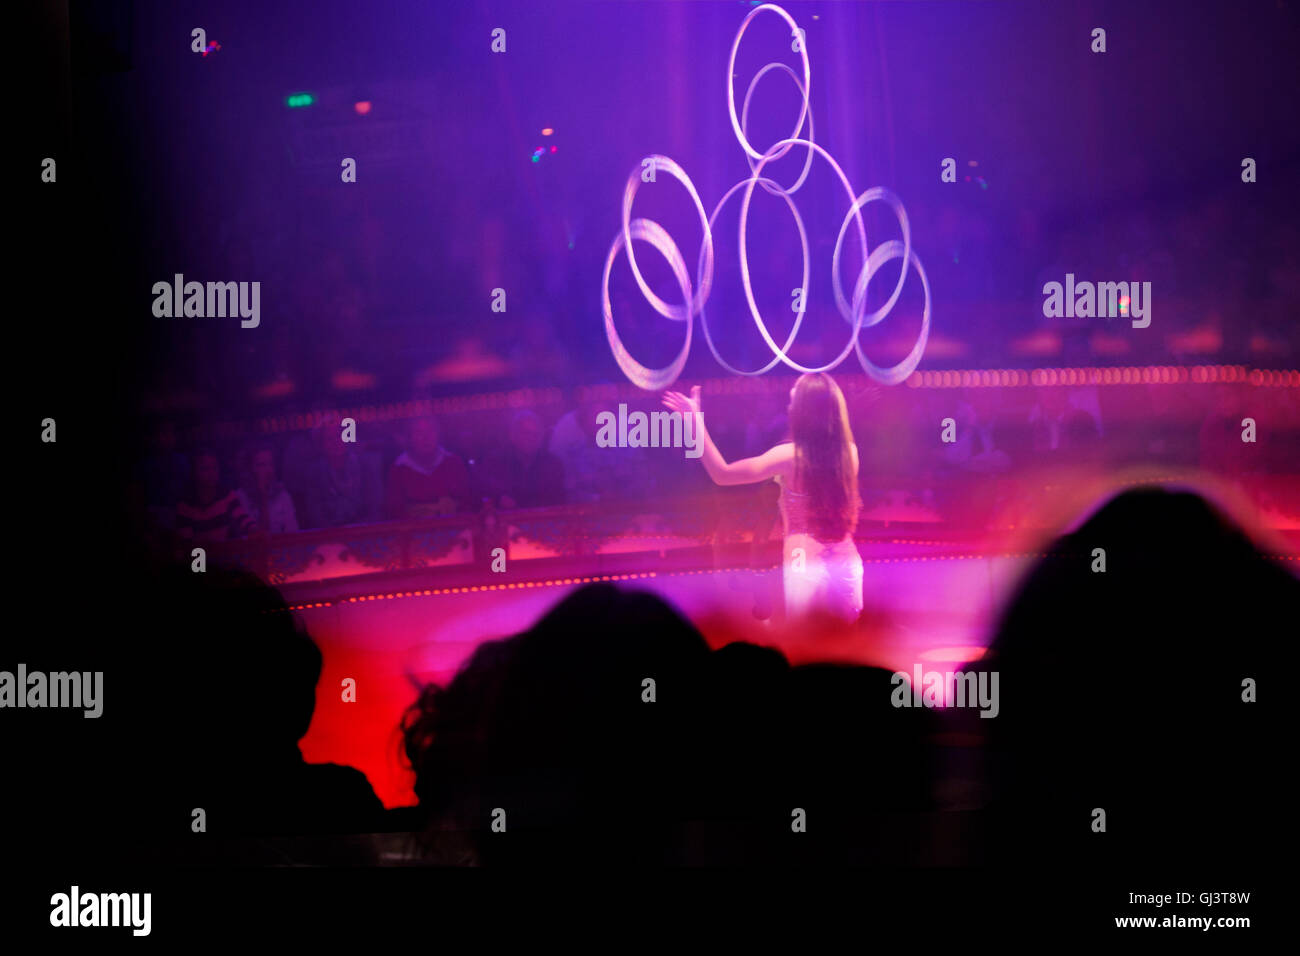 Artiste (female) with hoops in circus ring with audience - Stock Image